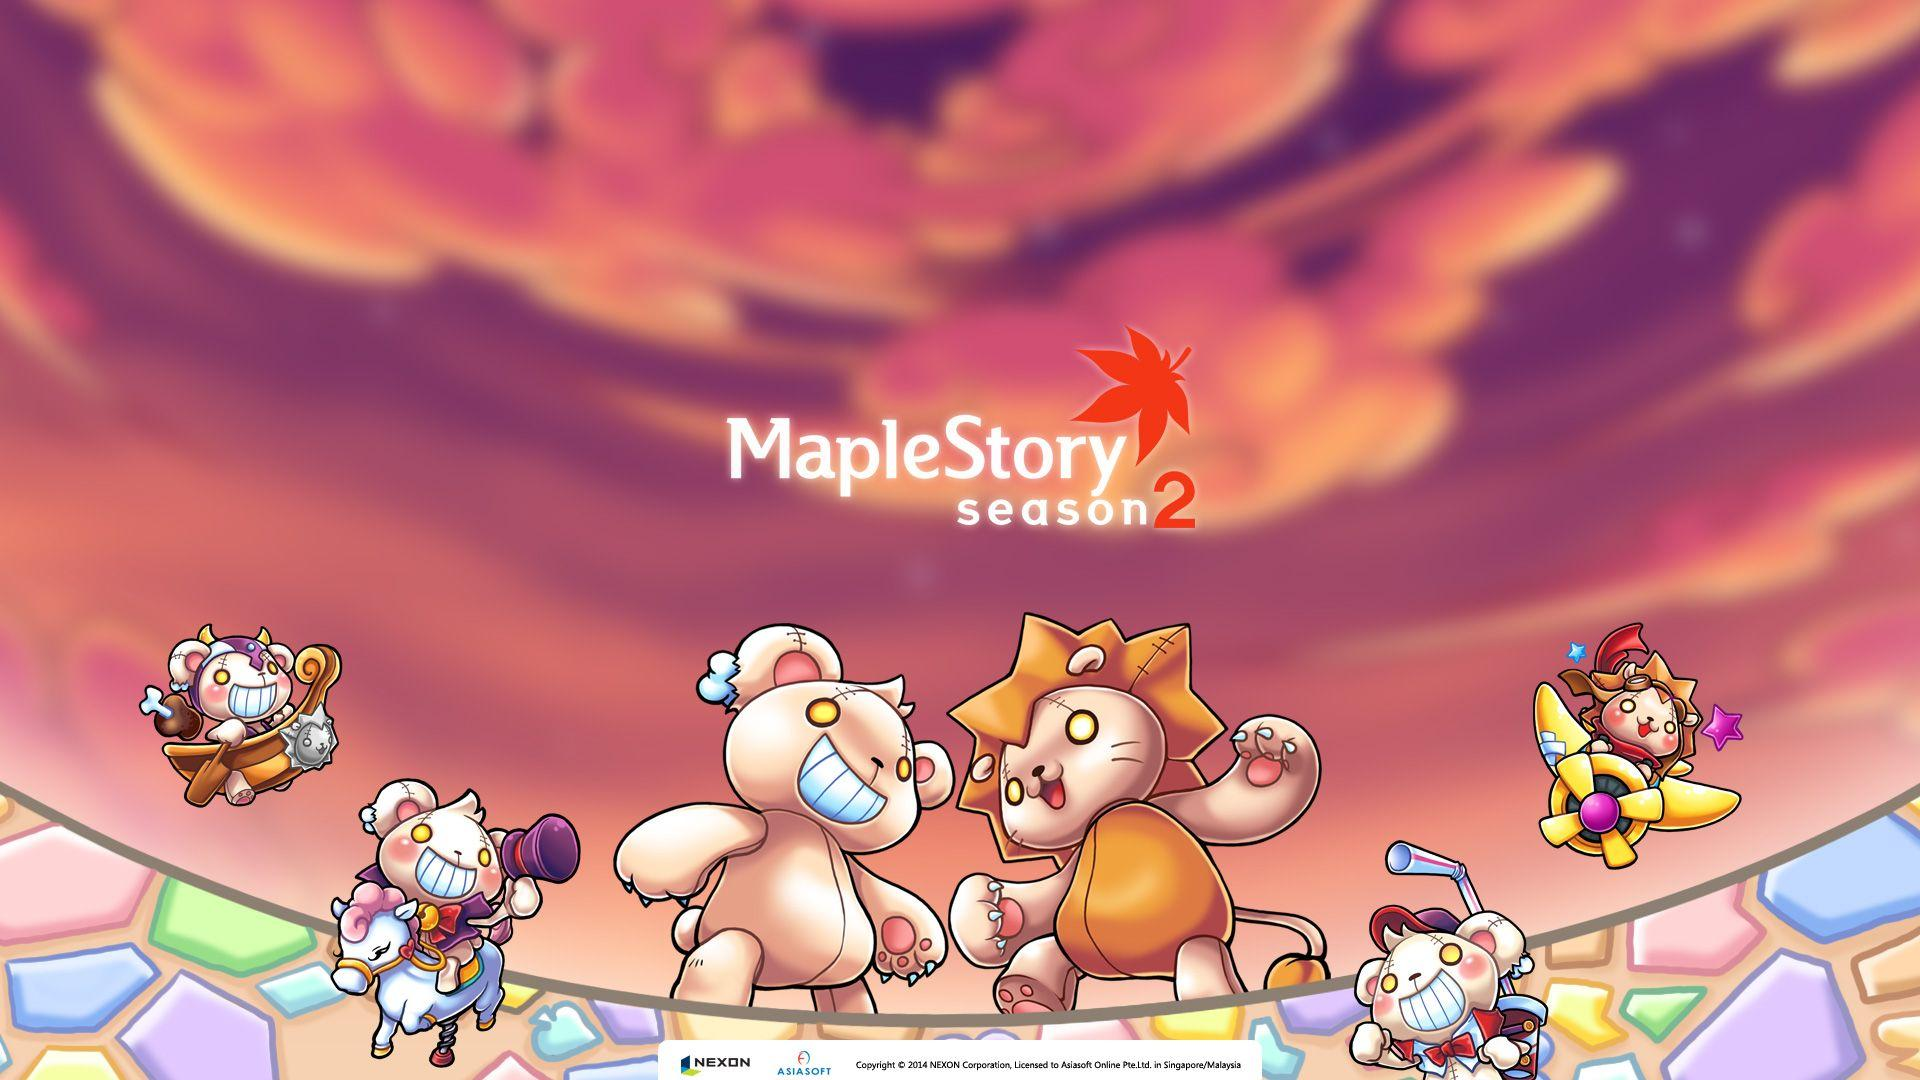 Cygnus Maplestory Wallpapers - Wallpaper Cave